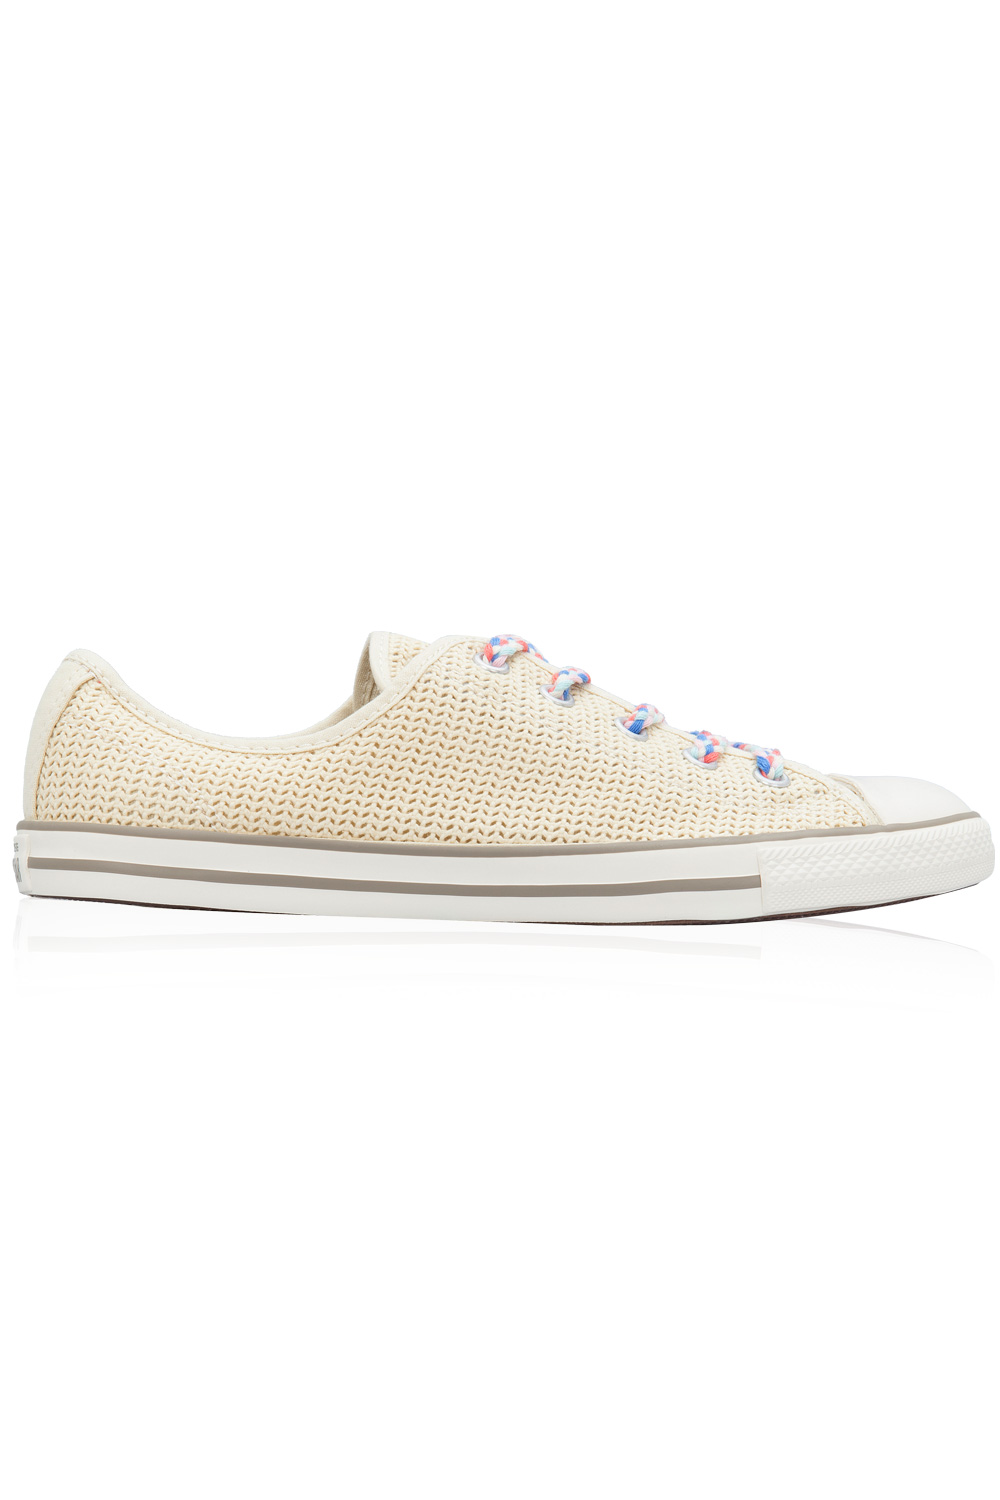 CT Chuck Taylor All Star Dainty Sneaker